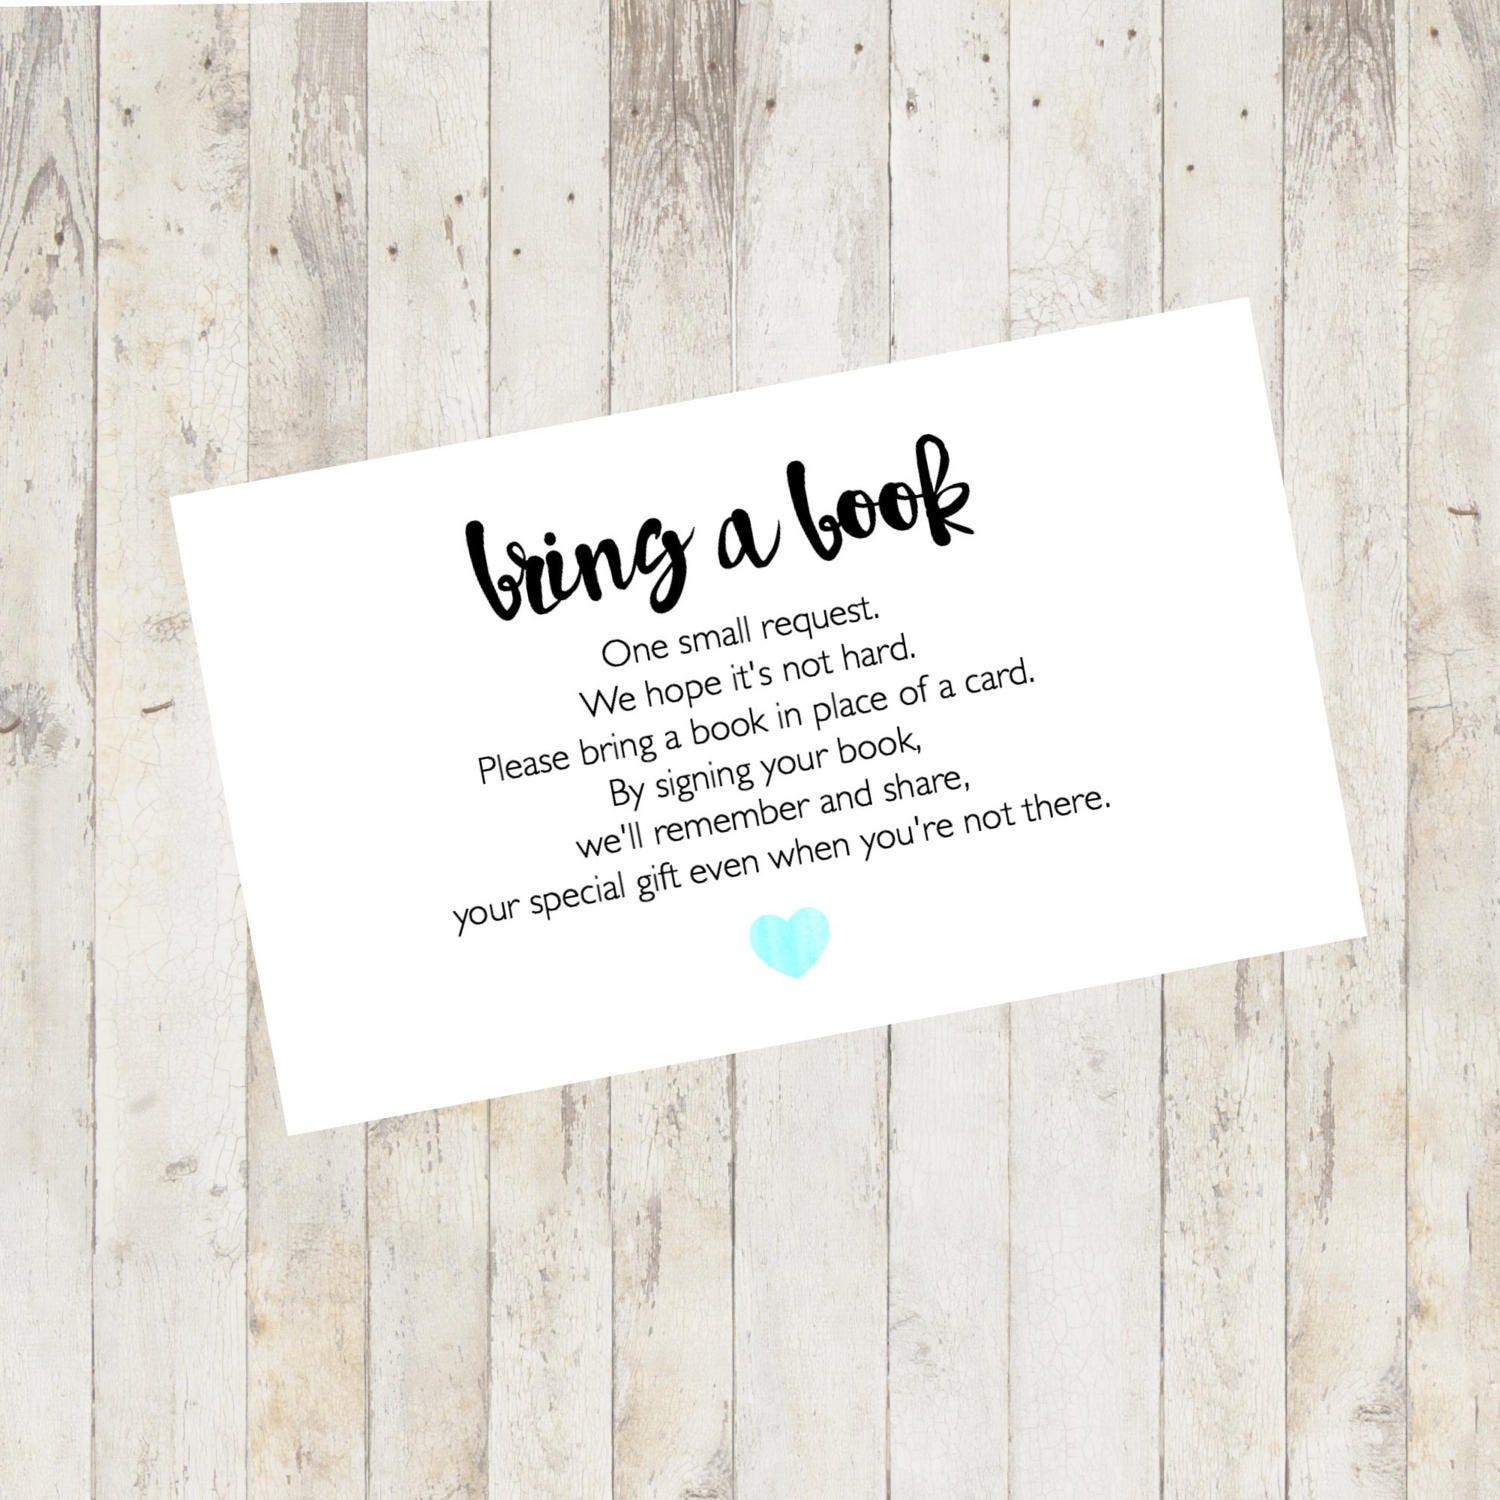 photograph about Bring a Book Instead of a Card Printable named Boy or girl Shower Printable, Boy or girl Shower Carry a Reserve Card, Carry a E-book As an alternative of a Card, Convey a E-book Kid Shower Include Pastel Blue